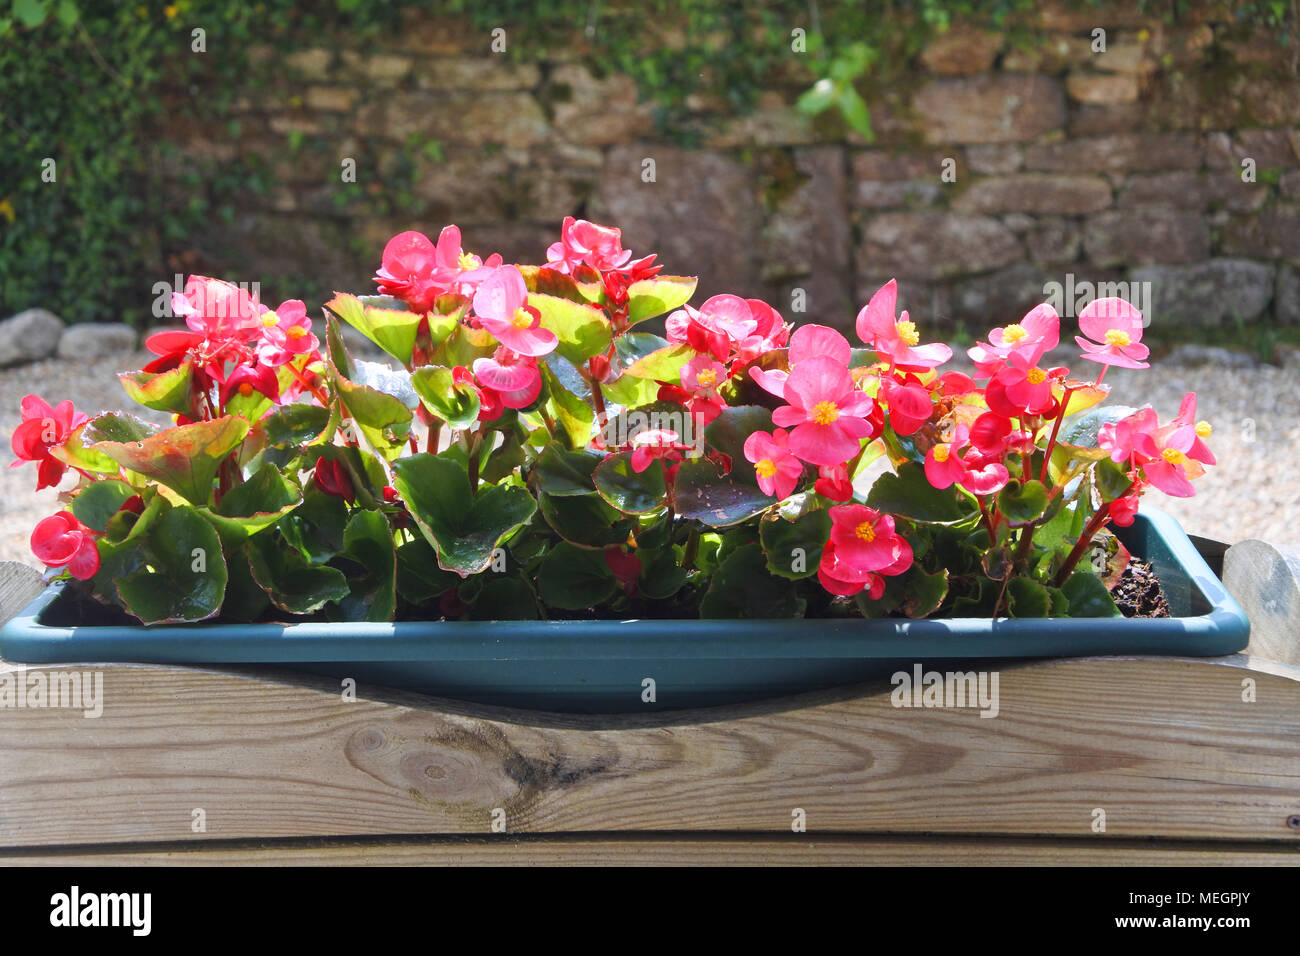 A colourful window box full of begonias - John Gollop Stock Photo